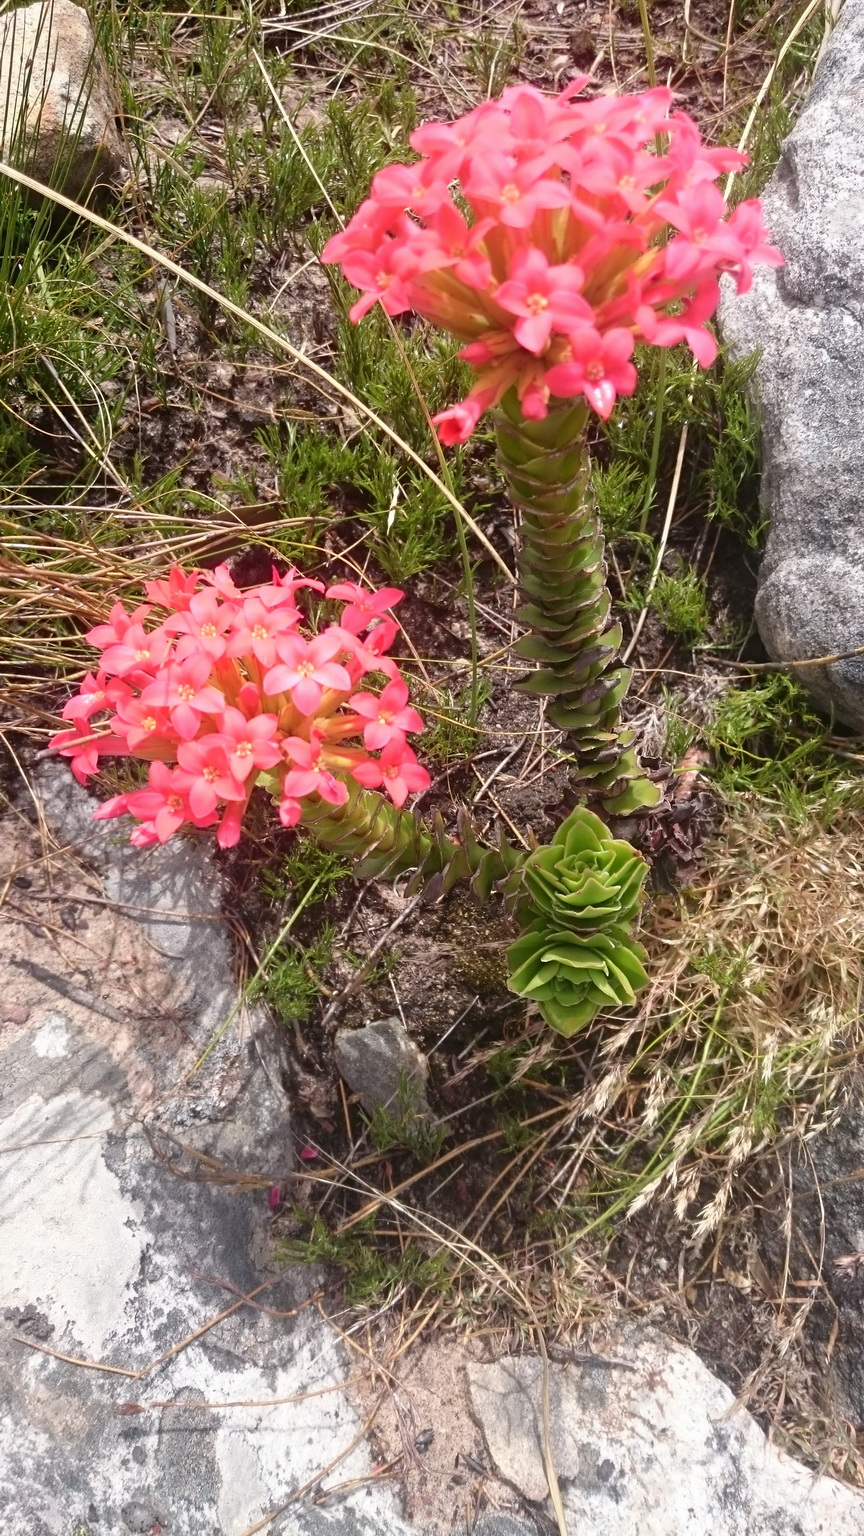 This Crassula coccinea really cheered me up, been waiting to see it in full bloom on every training mission.